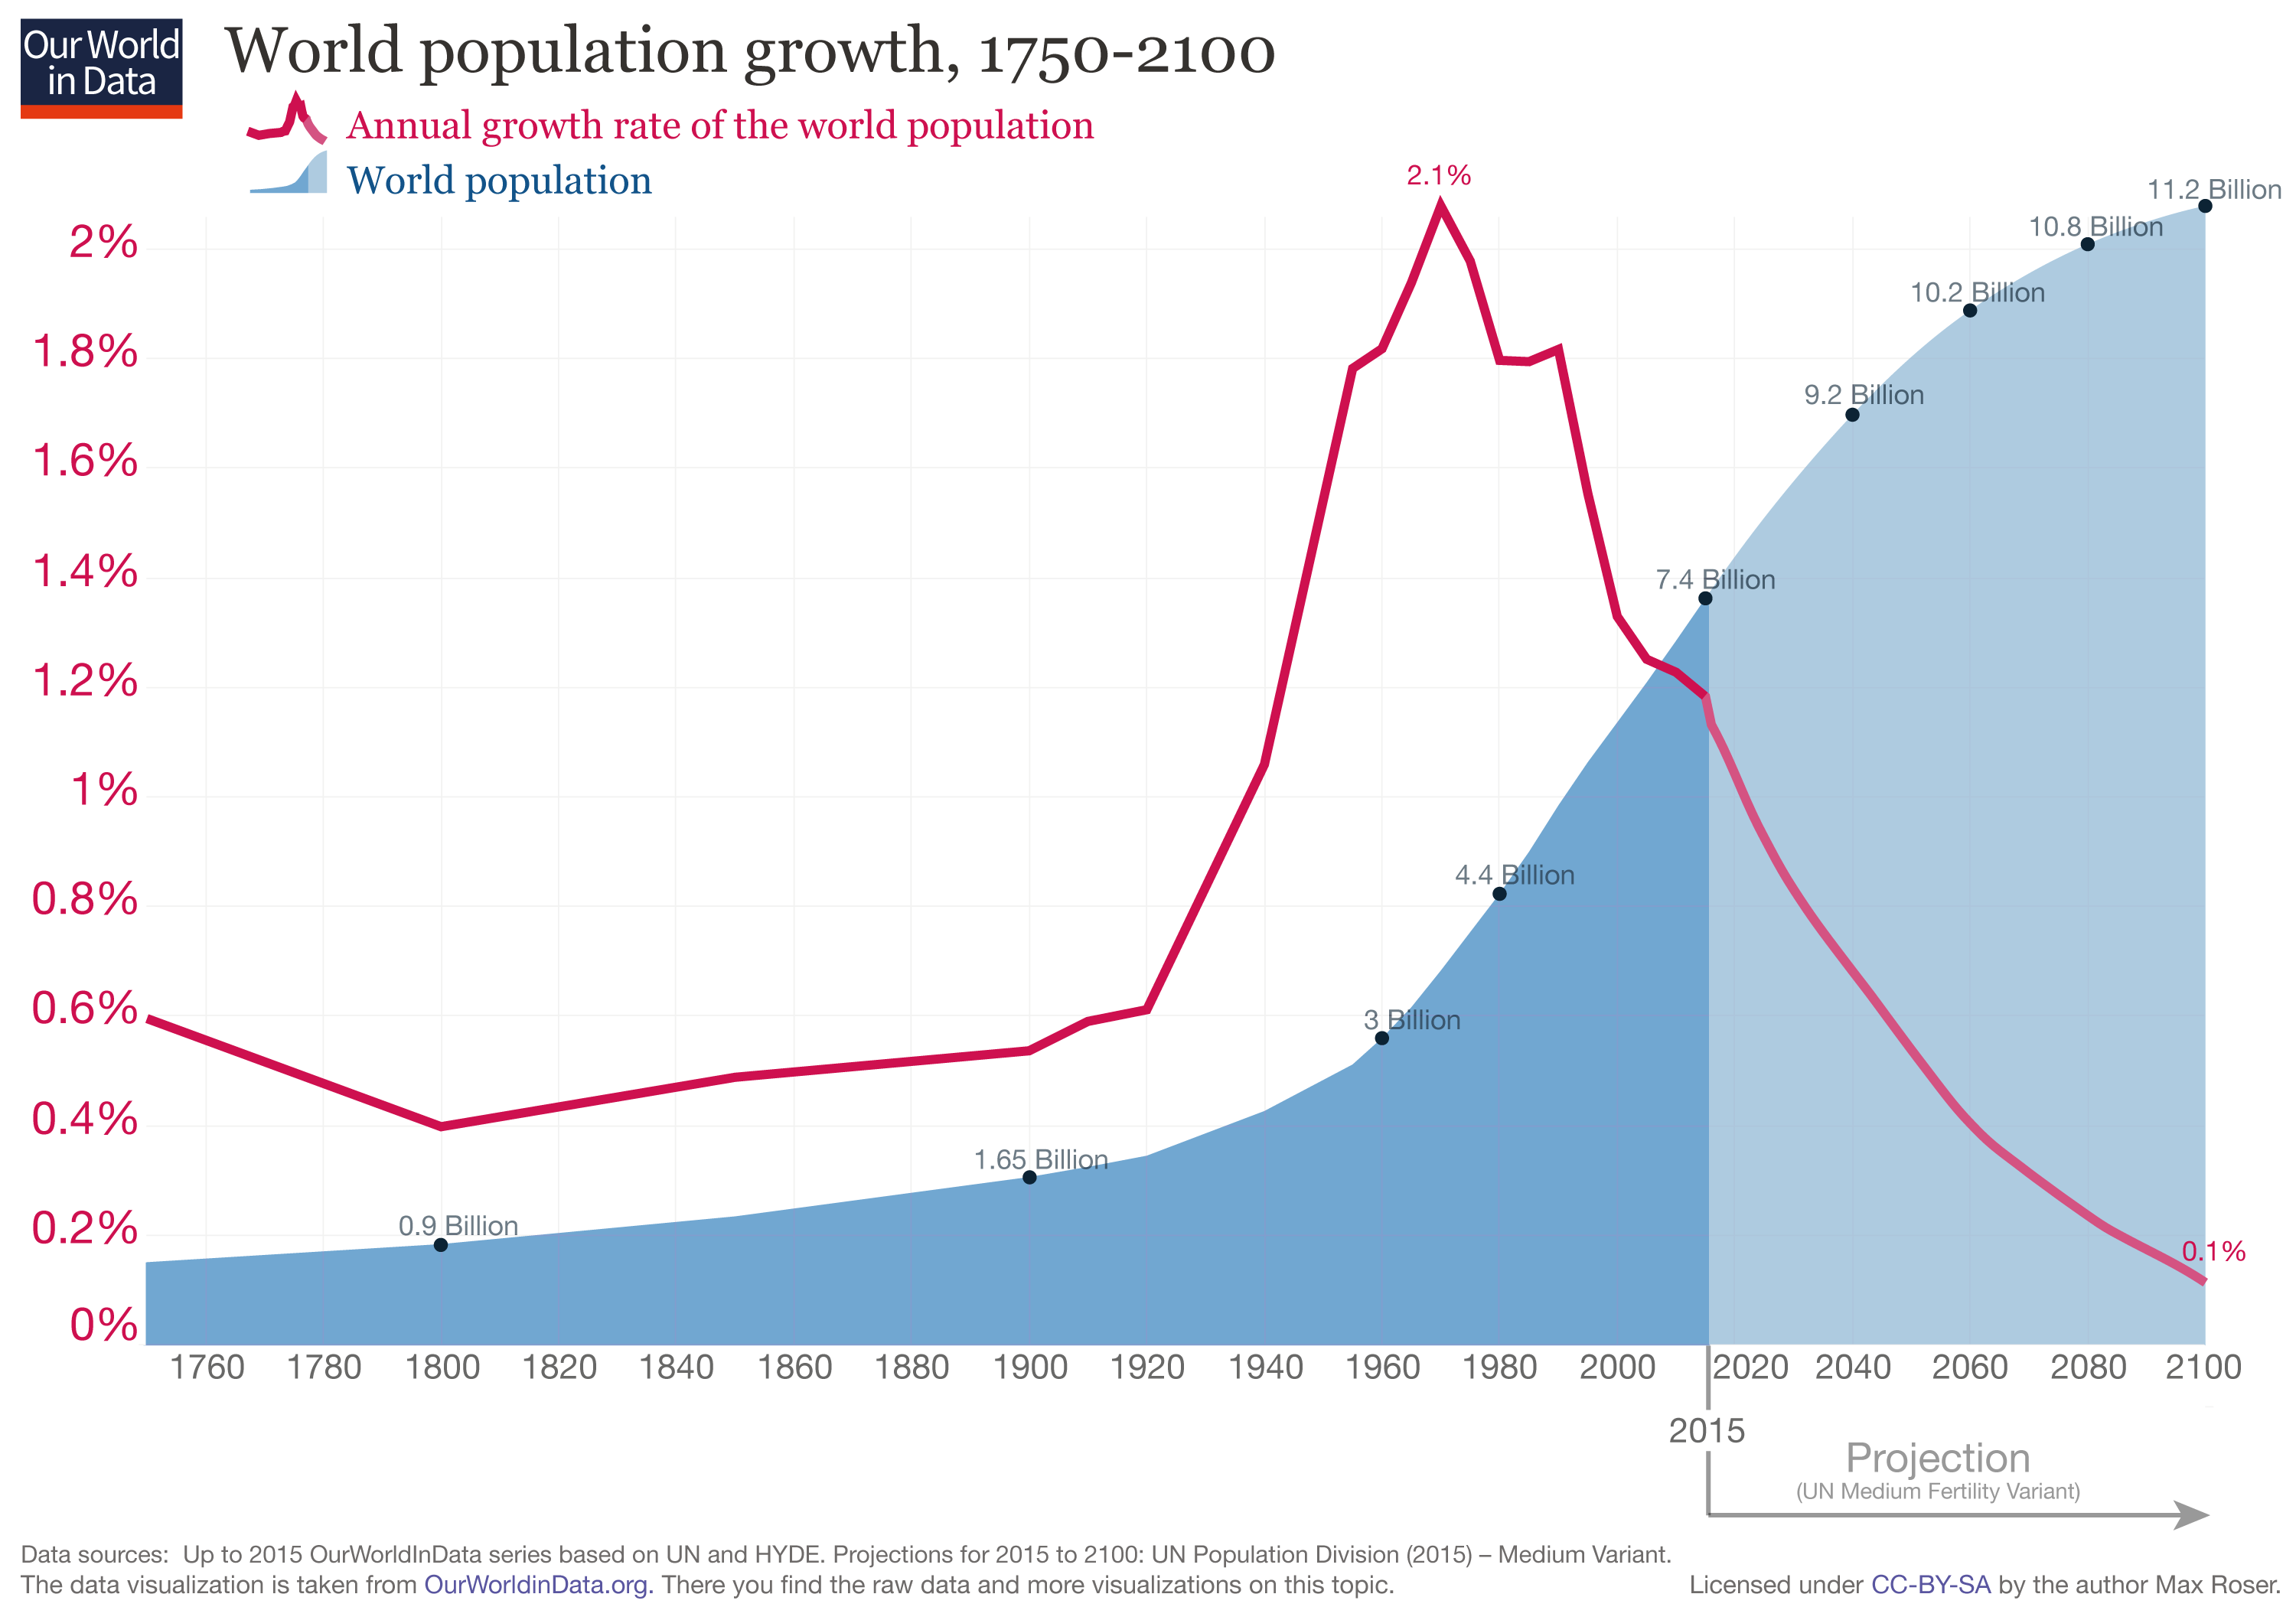 https://ourworldindata.org/uploads/2013/05/updated-World-Population-Growth-1750-2100.png